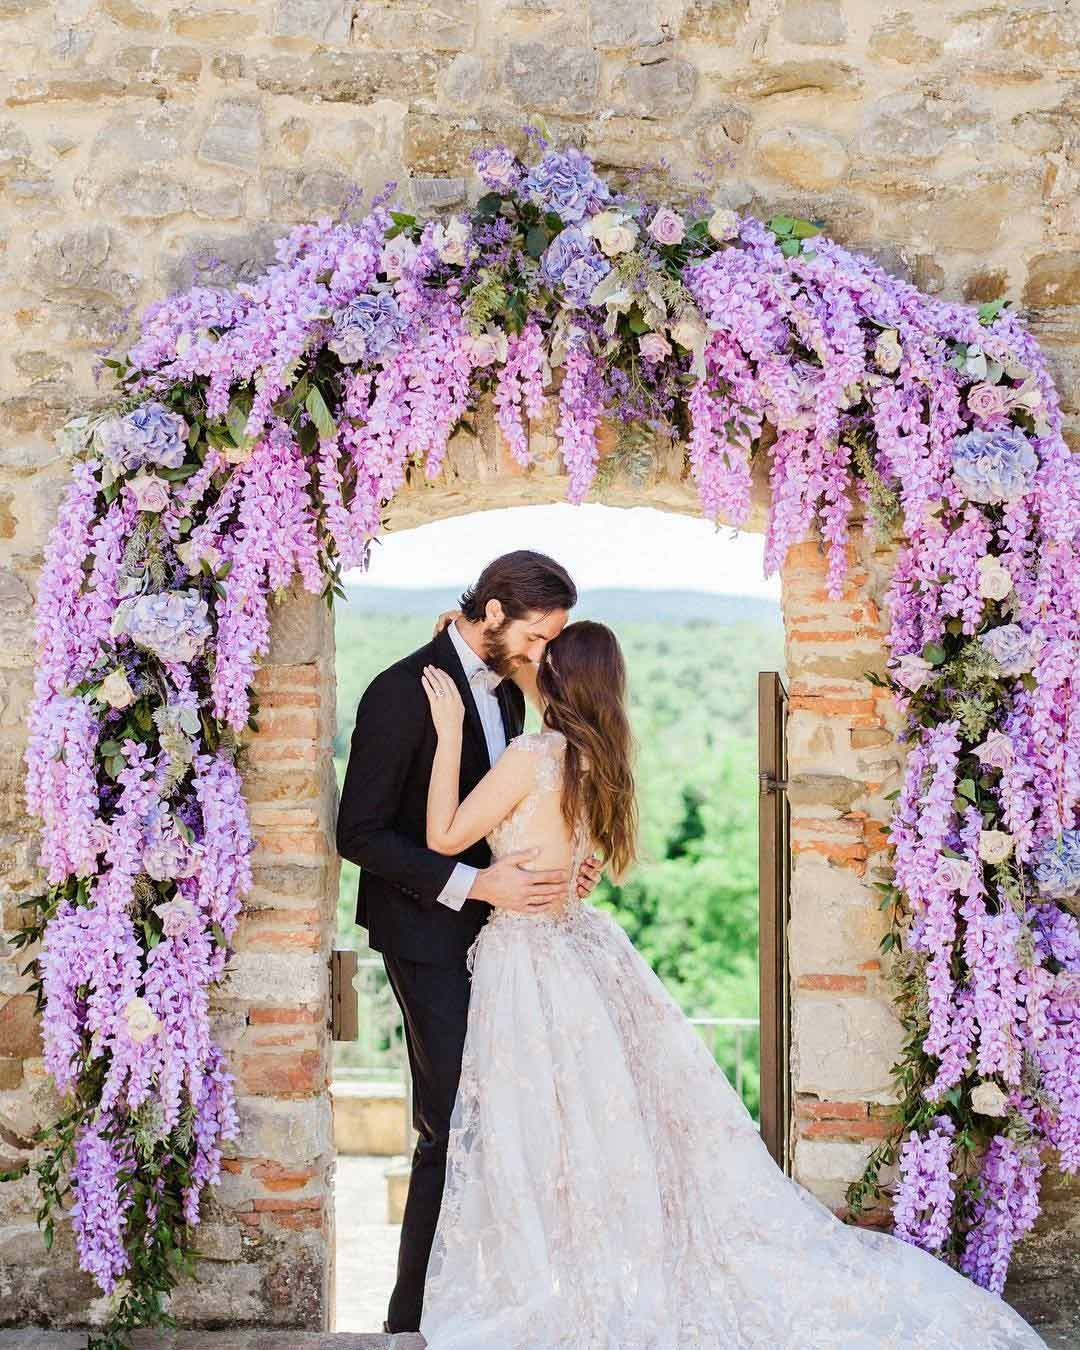 lilac wedding colors flower arch bride groom-